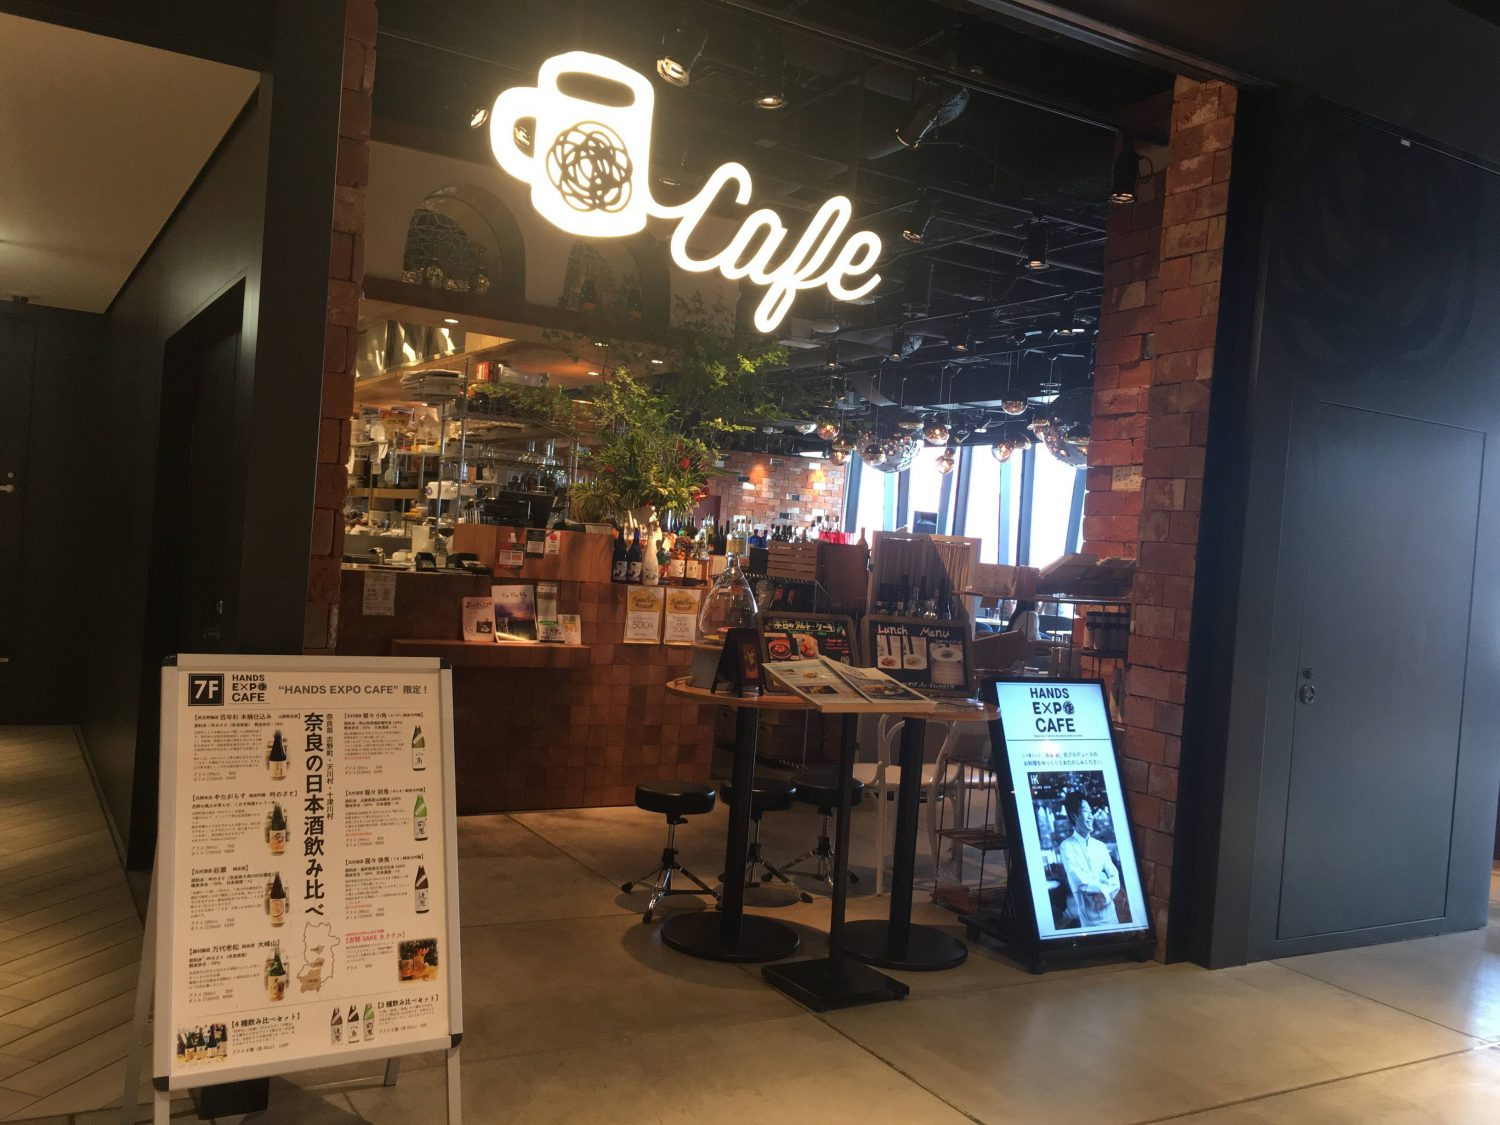 HANDS EXPO CAFE